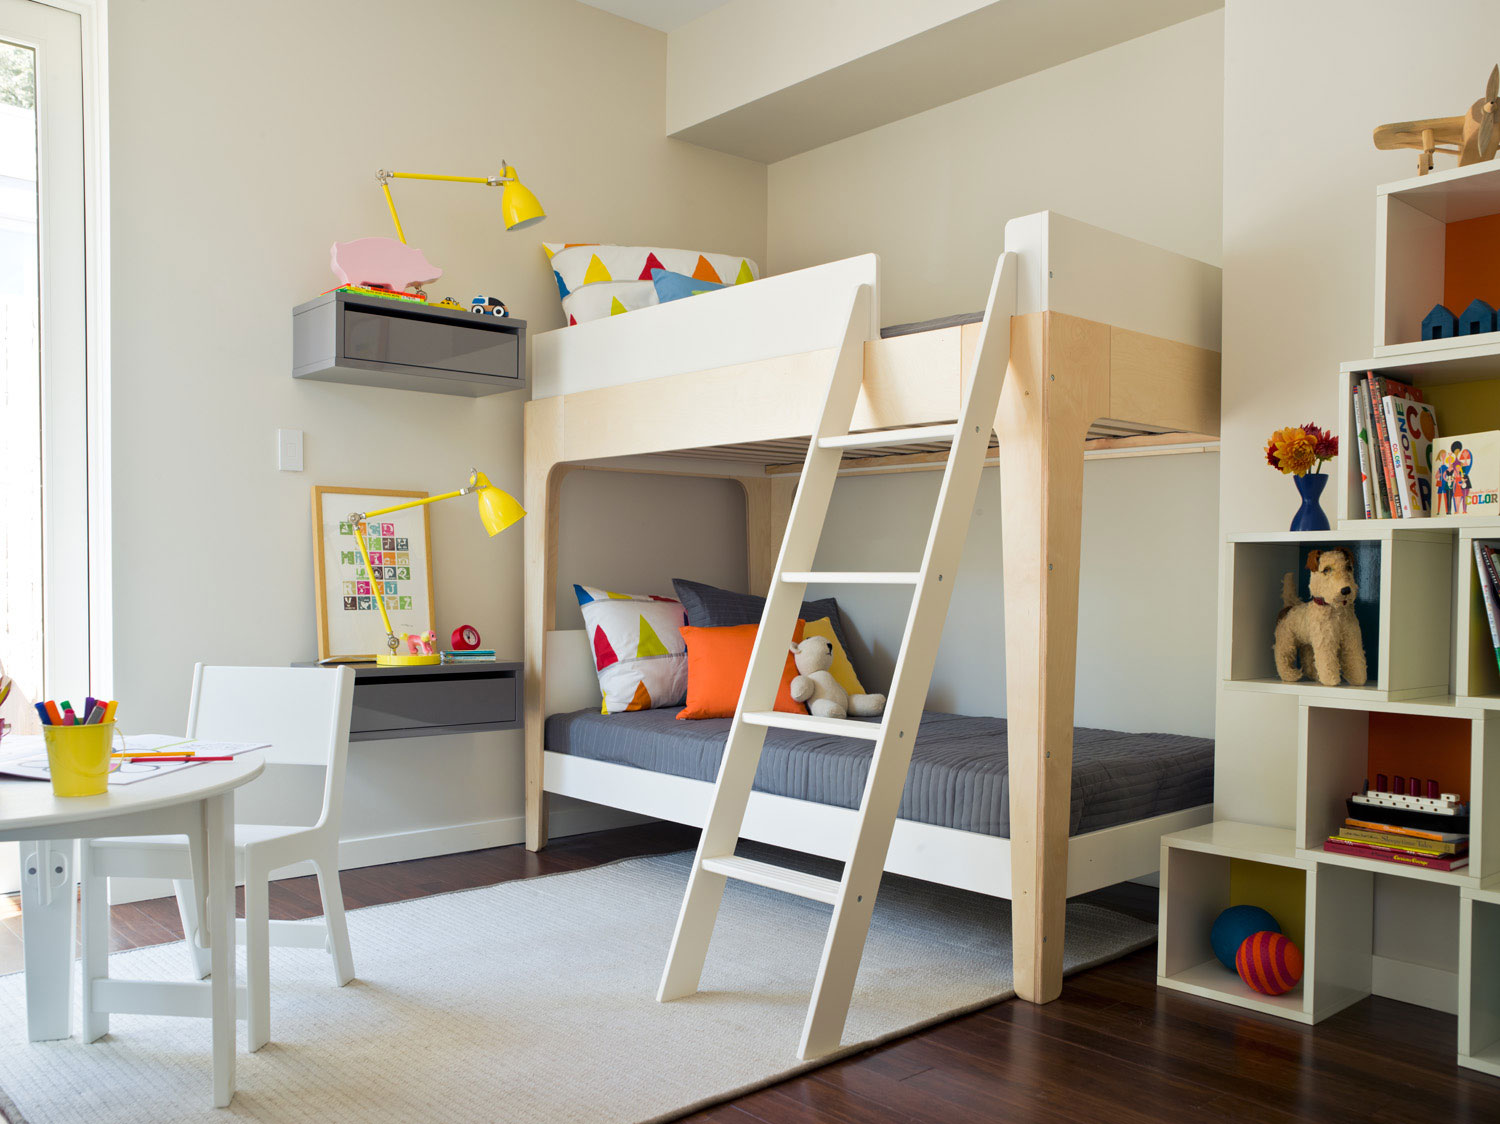 Breezehouse 2012: Tour the Kids' Room